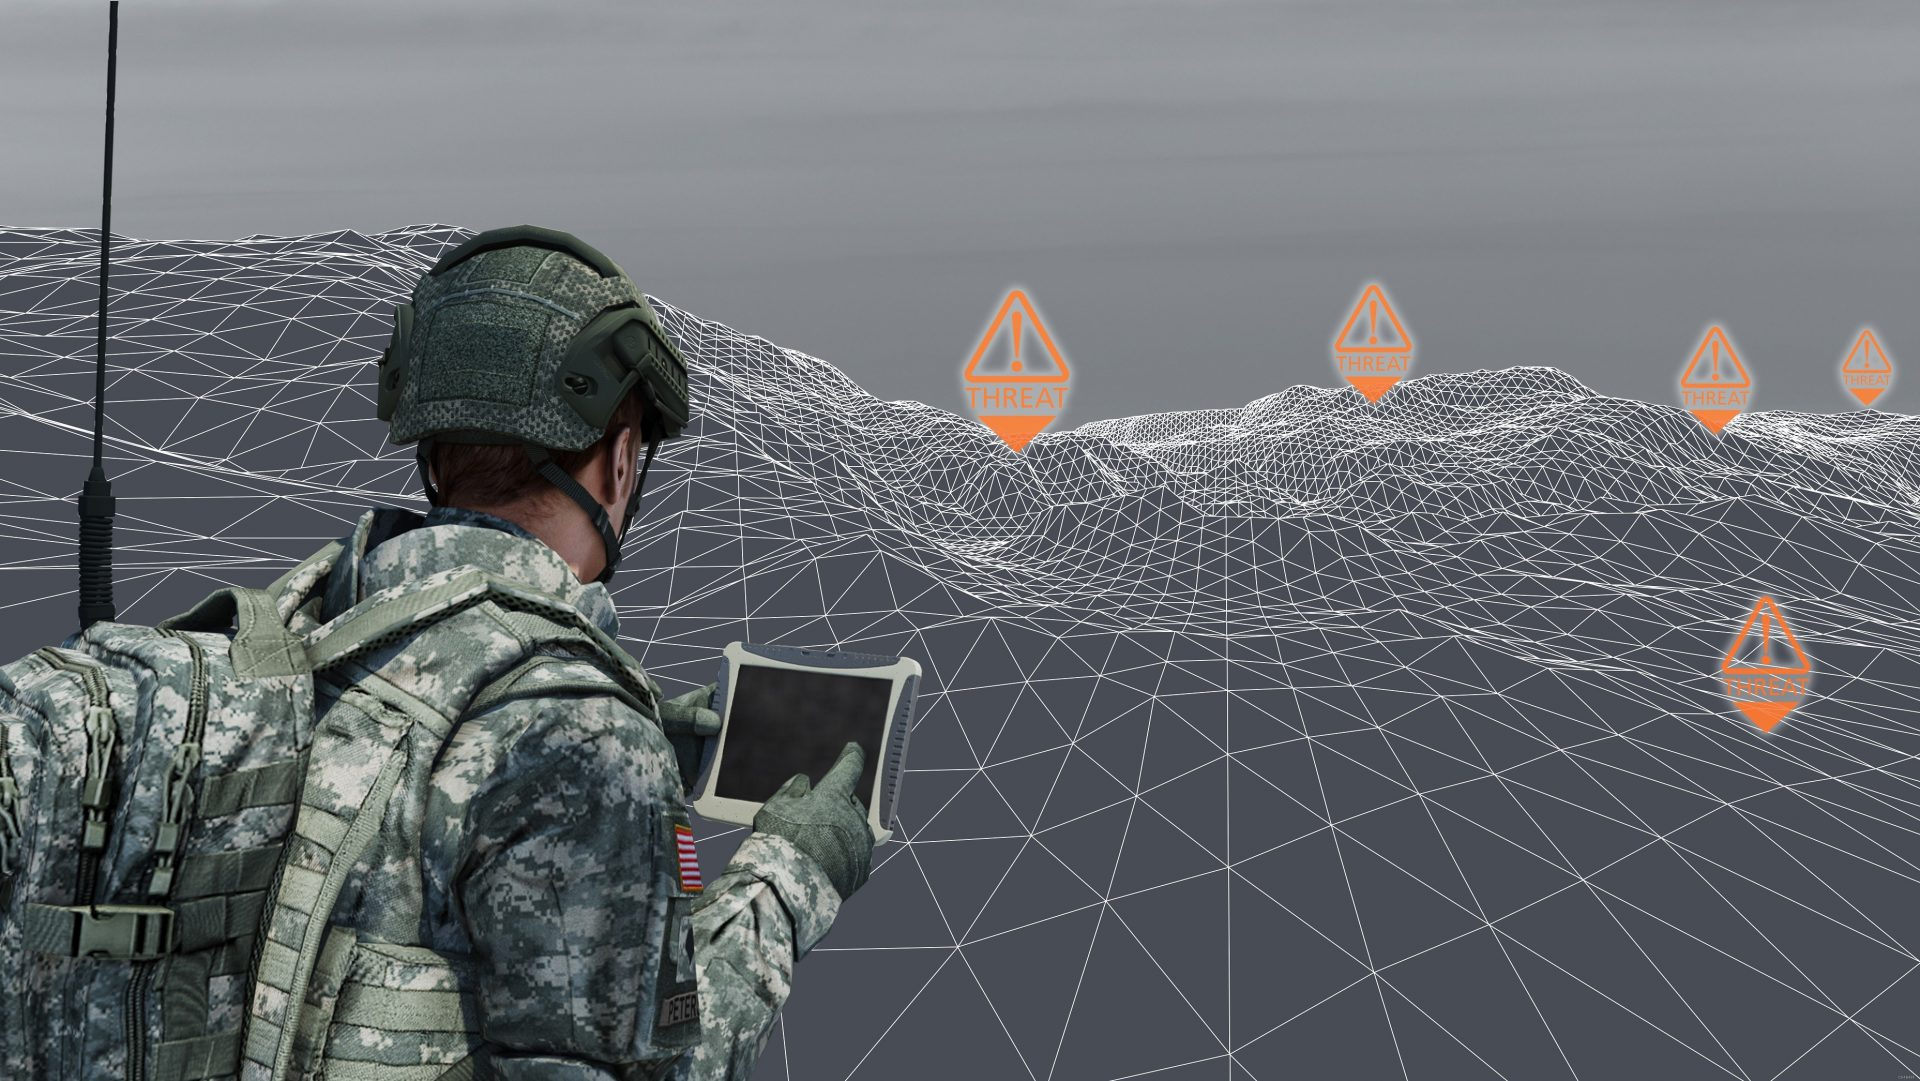 [BAE Systems / Breaking Defence] Solider, Battlefield Sensors Image